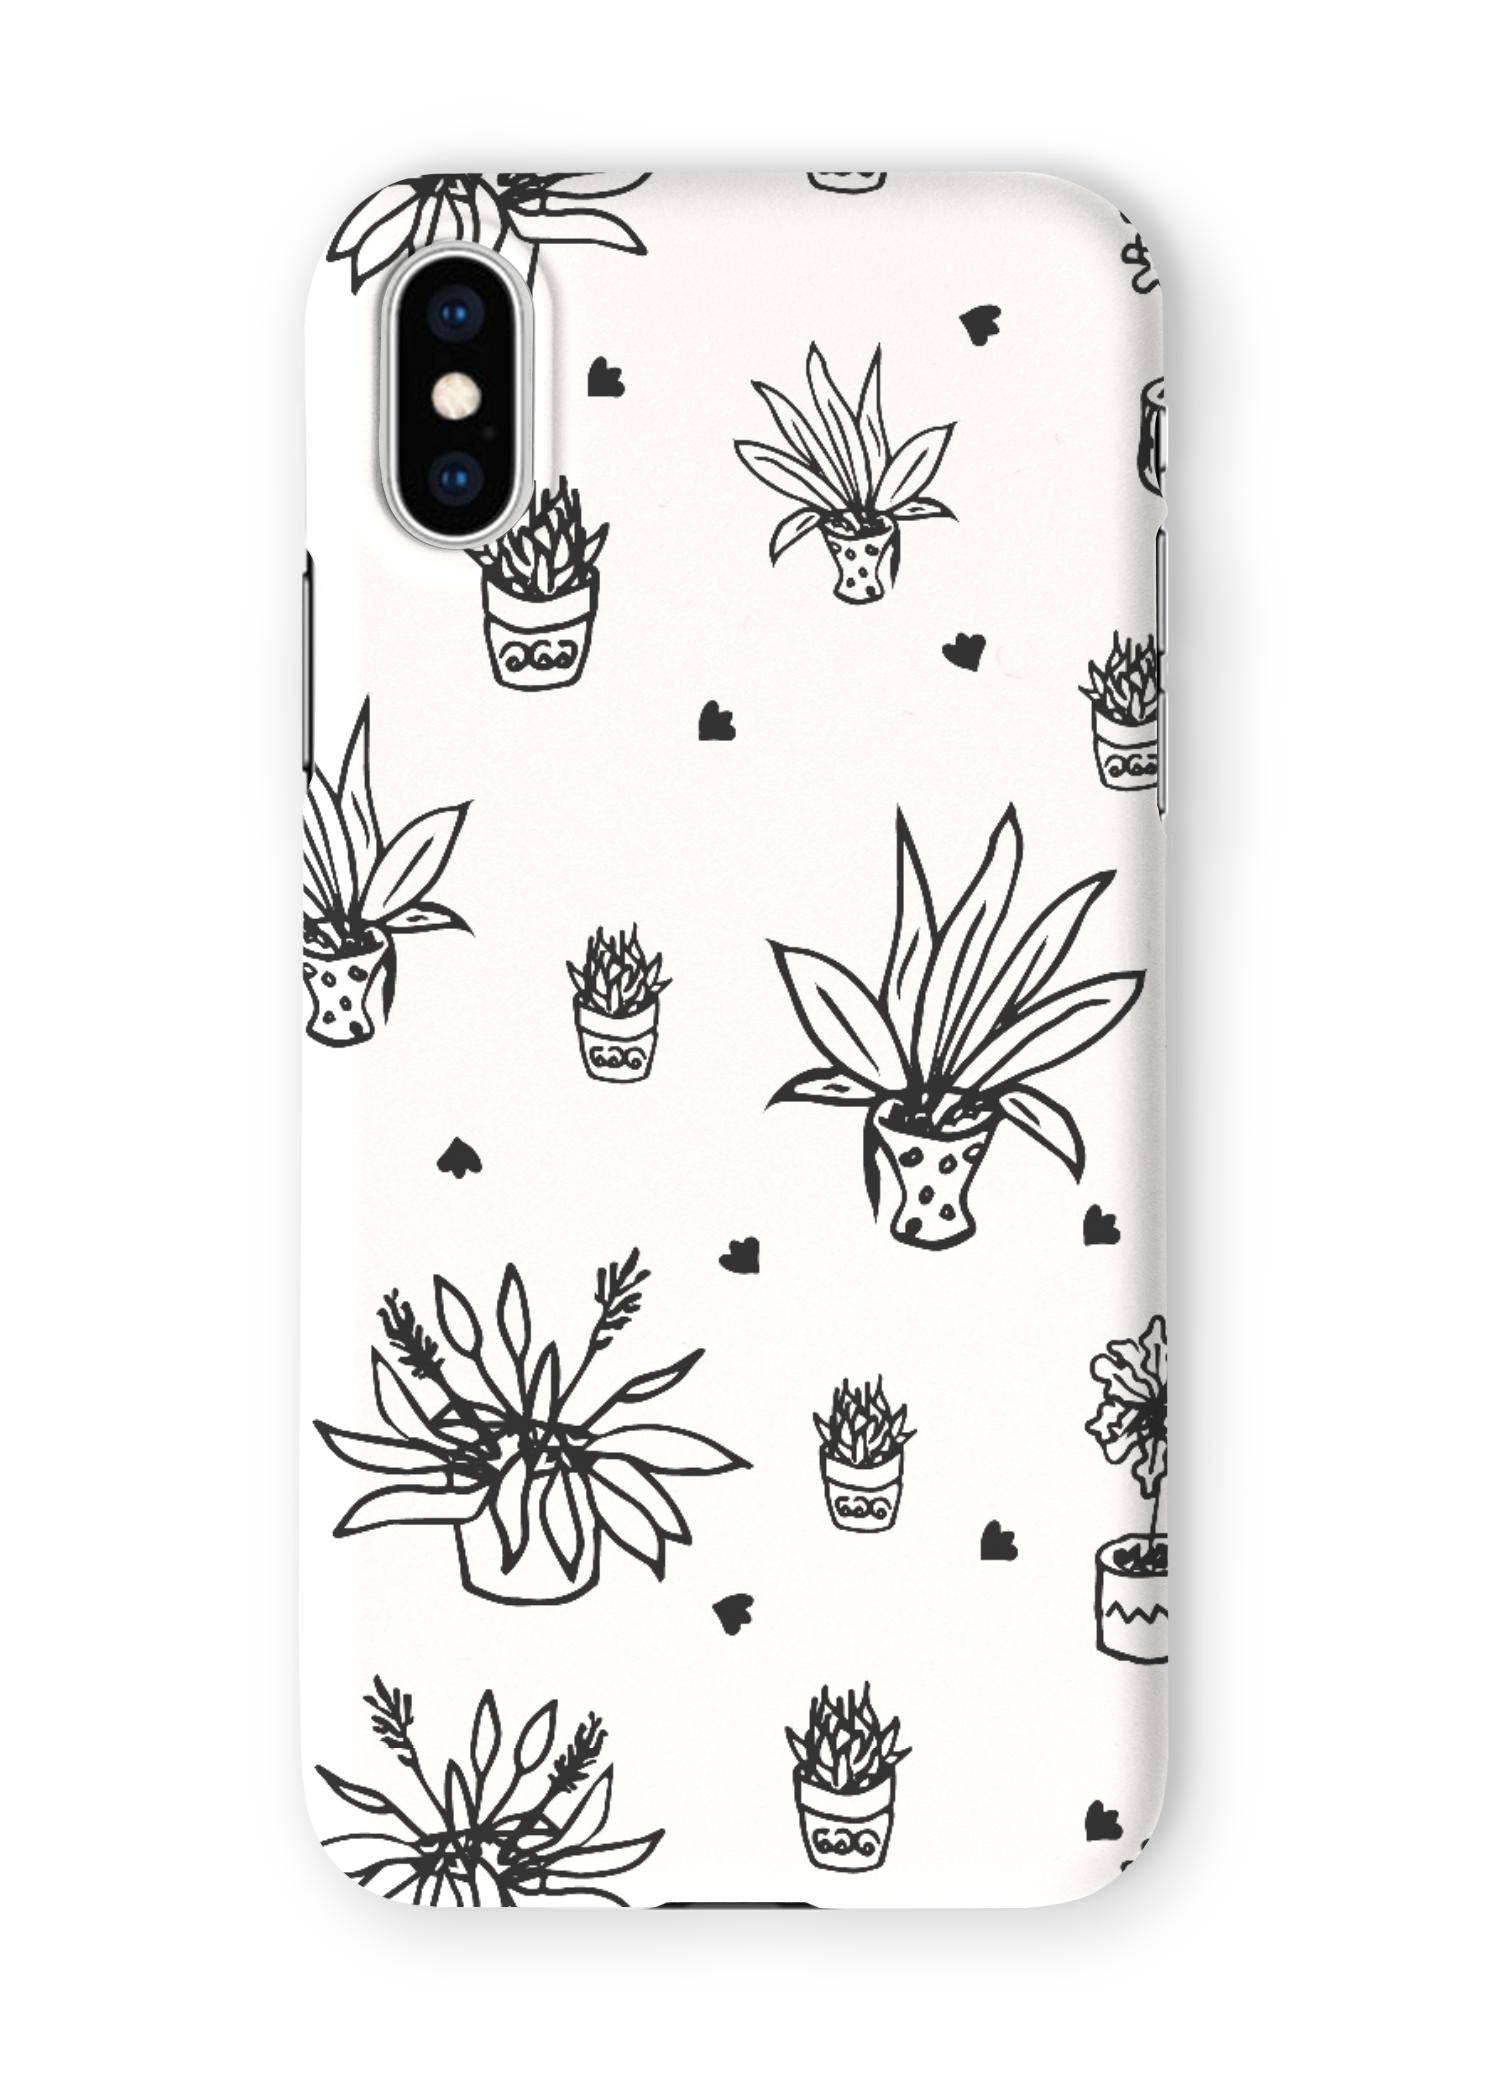 VIDA iPhone Case - Home Flowers Doodles Bw by VIDA Original Artist  - Size: Extra Small